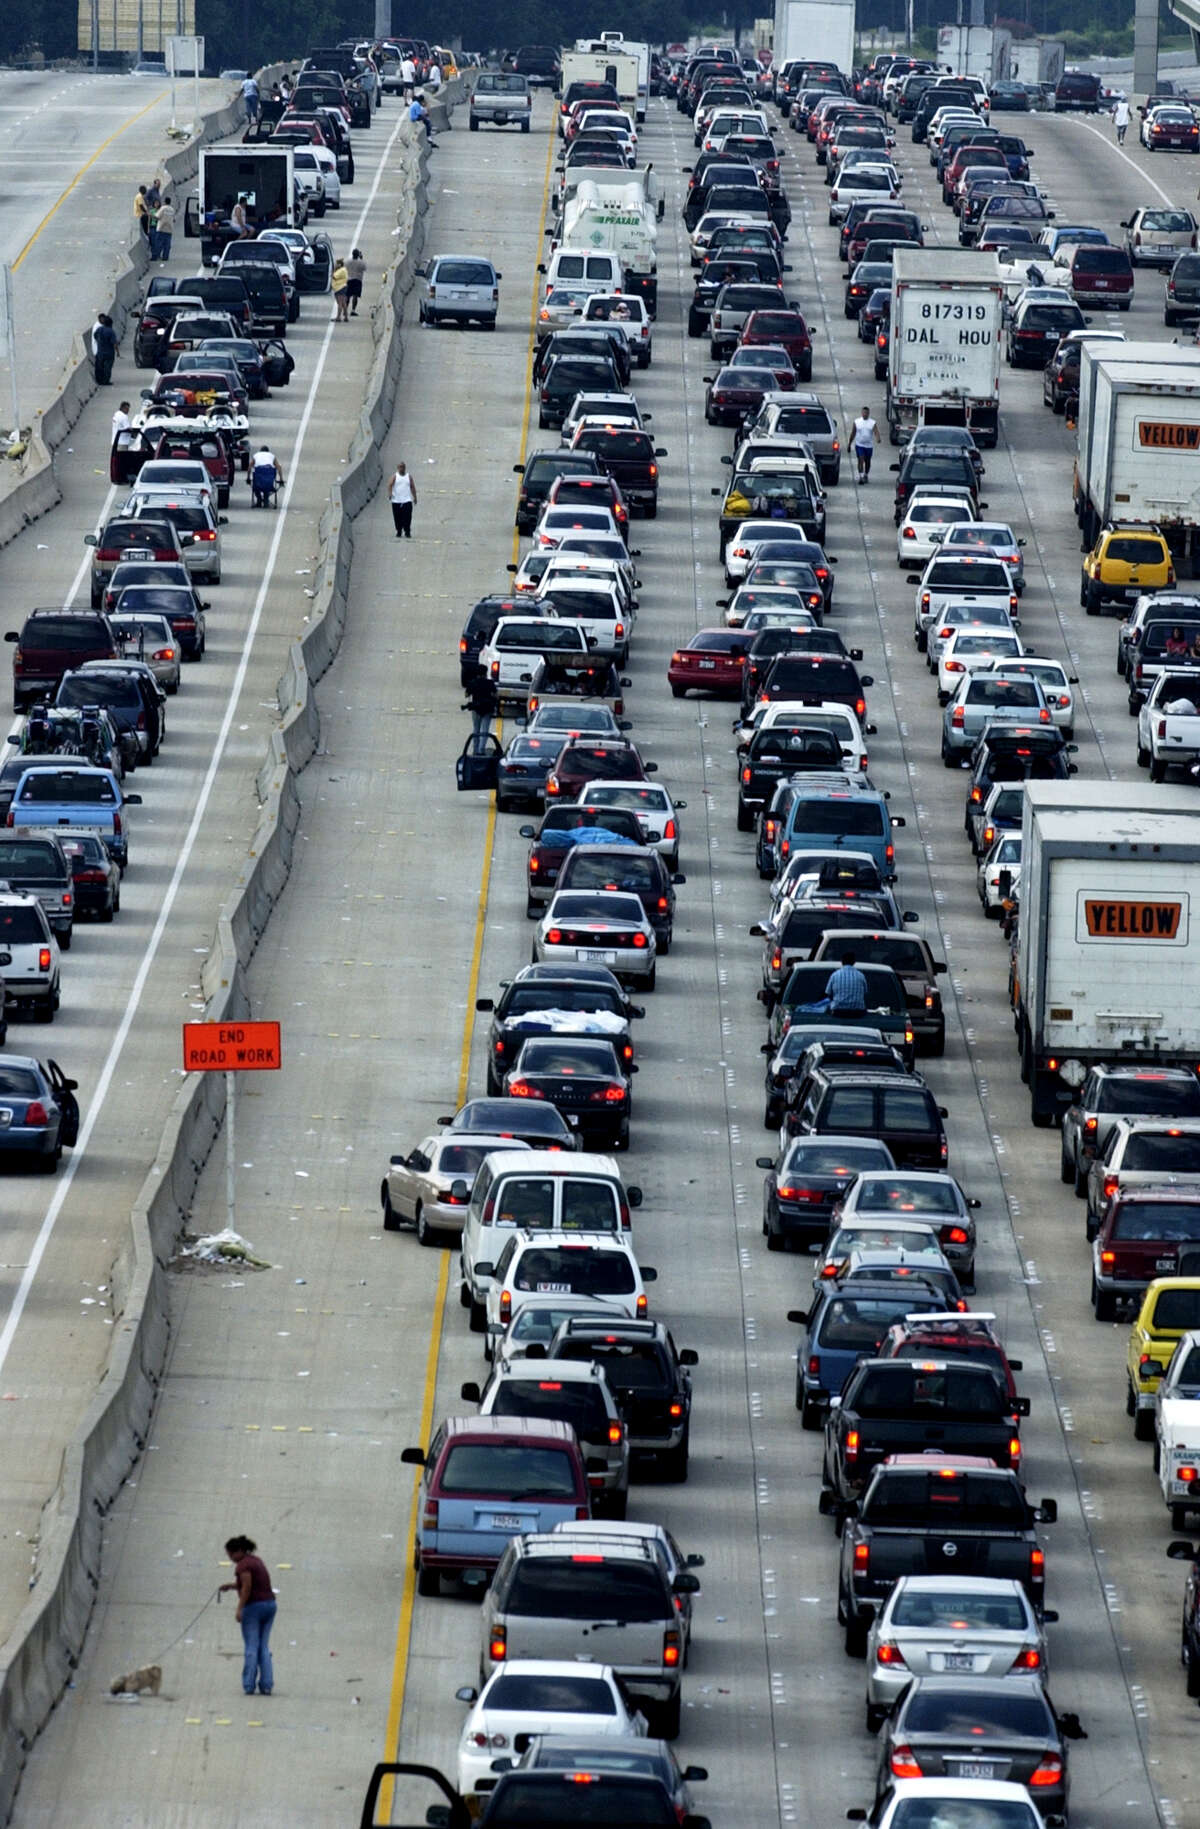 Houstonians share their worst traffic nightmares The traffic drives us all insane in Houston, but some hold-ups are crazier than others. See what Houstonians called their worst and weirdest traffic experiences.